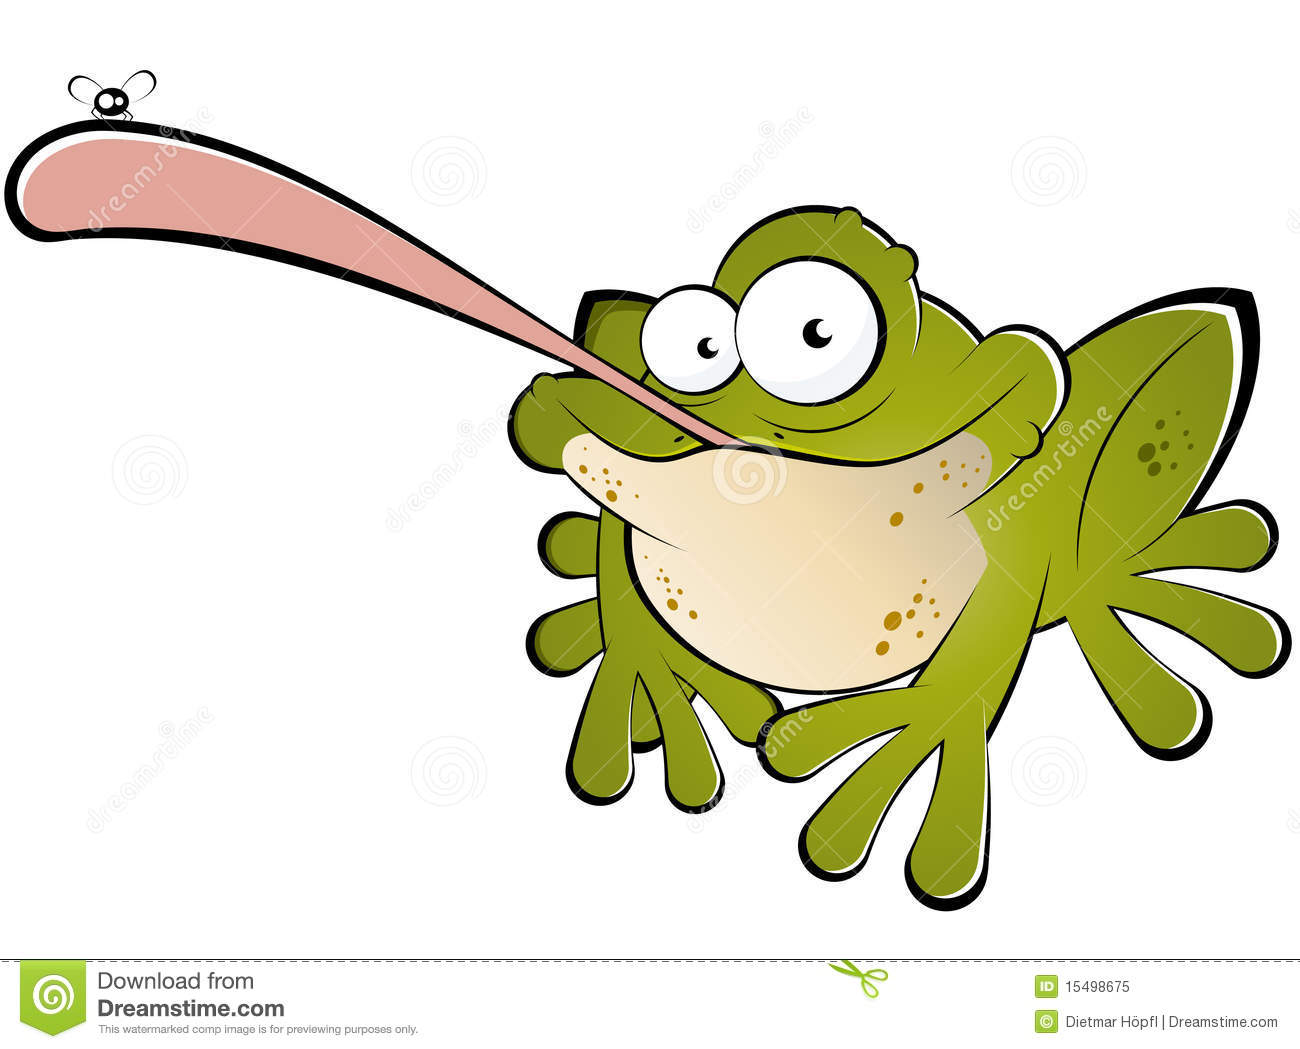 Grenouille Avec L Anomalie Sur La Langue Illustration De Vecteur Illustration Du Langue Grenouille 15498675